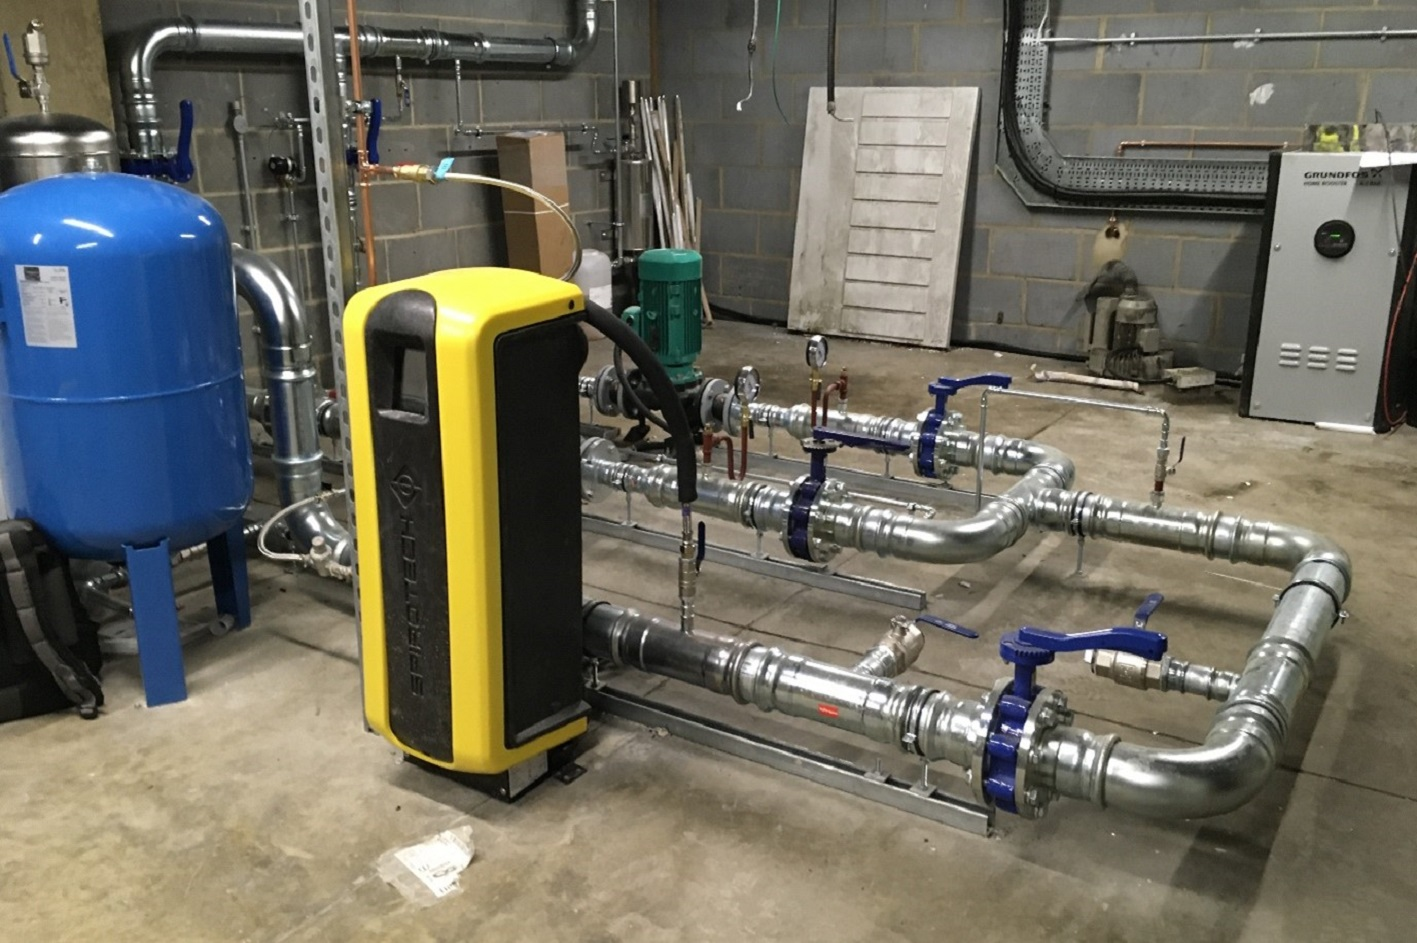 Refrigeration and the Road to Net Zero: Water-cooled Refrigeration